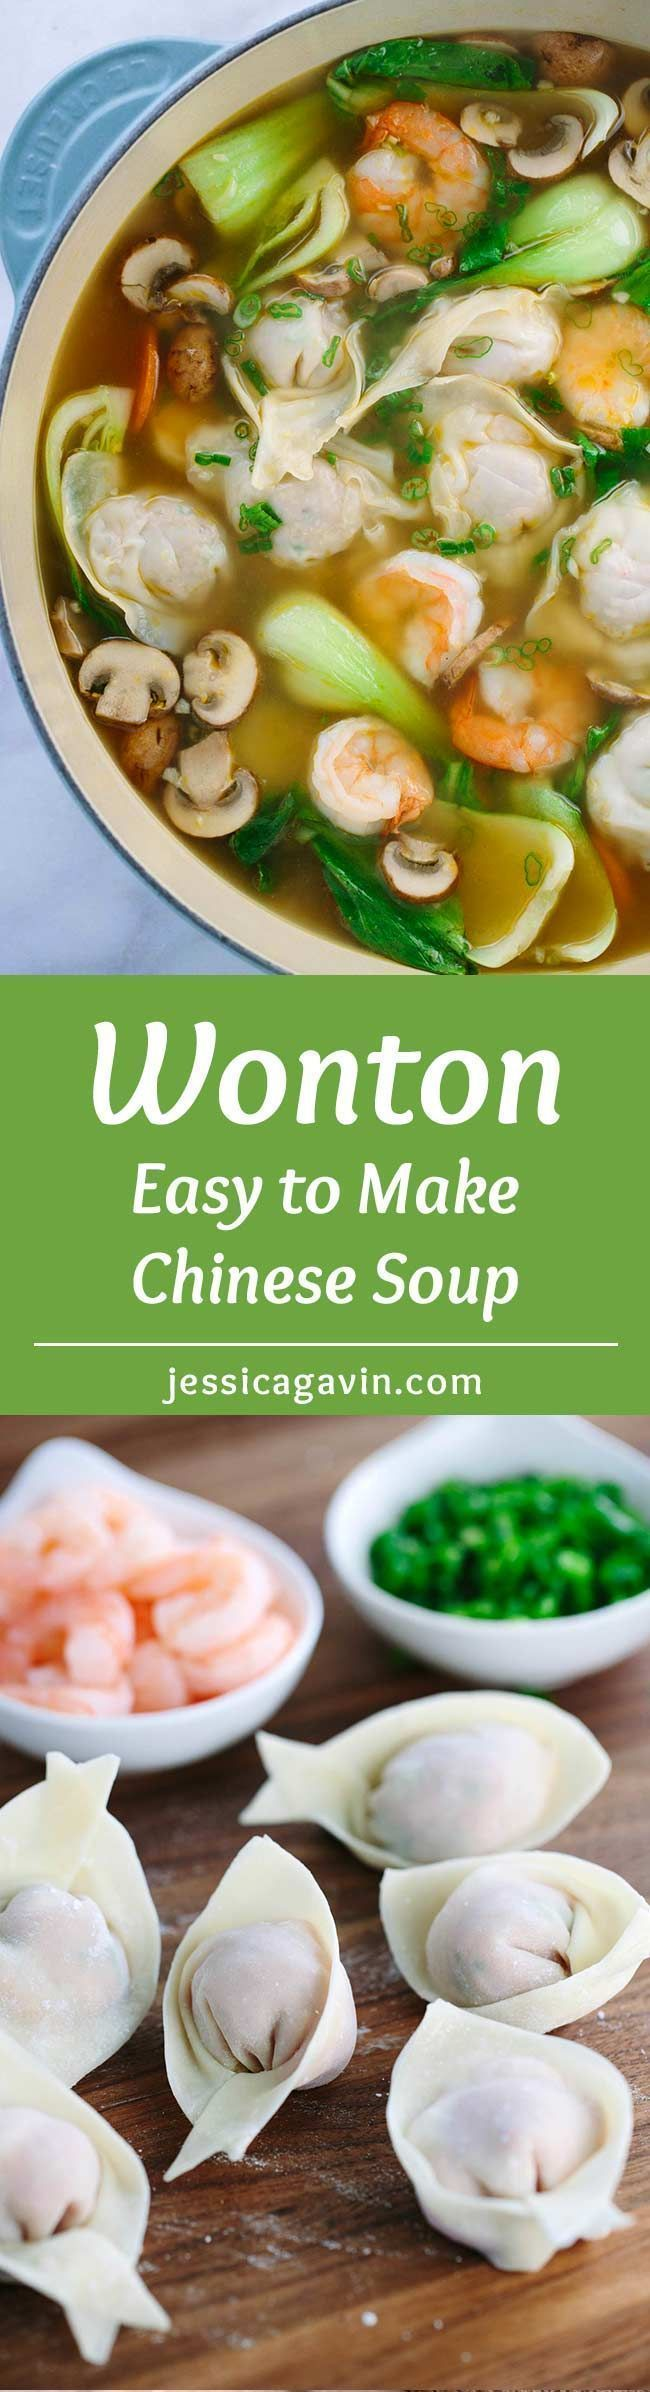 Easy Homemade Wonton Soup Recipe - Each hearty bowl is packed with plump pork dumplings, fresh vegetables and jumbo shrimp. This authentic Asian meal is fun to make!